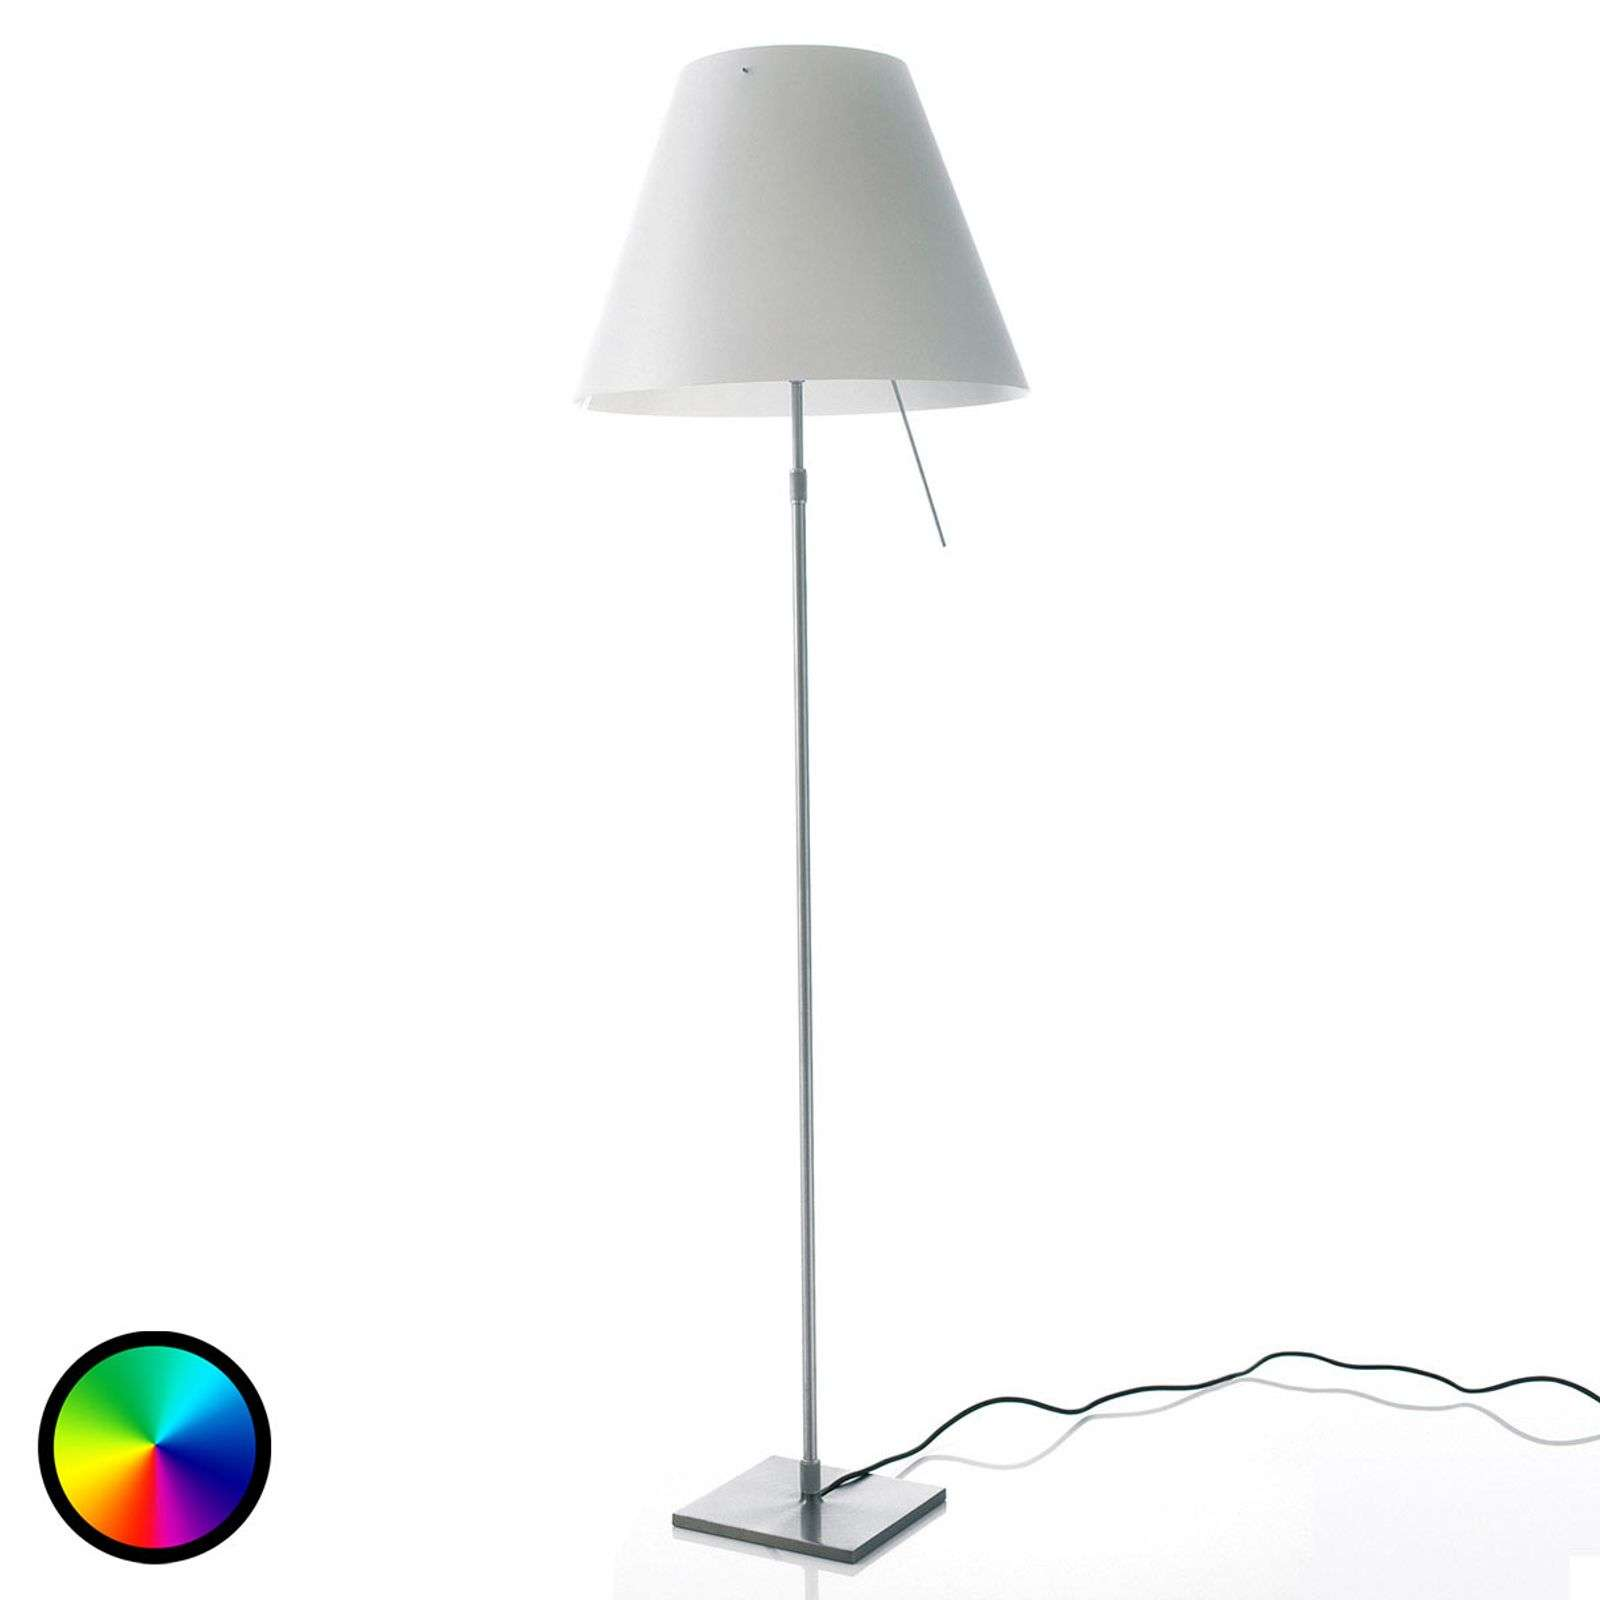 Lampadaire LED Philips Hue Costanza, réglable